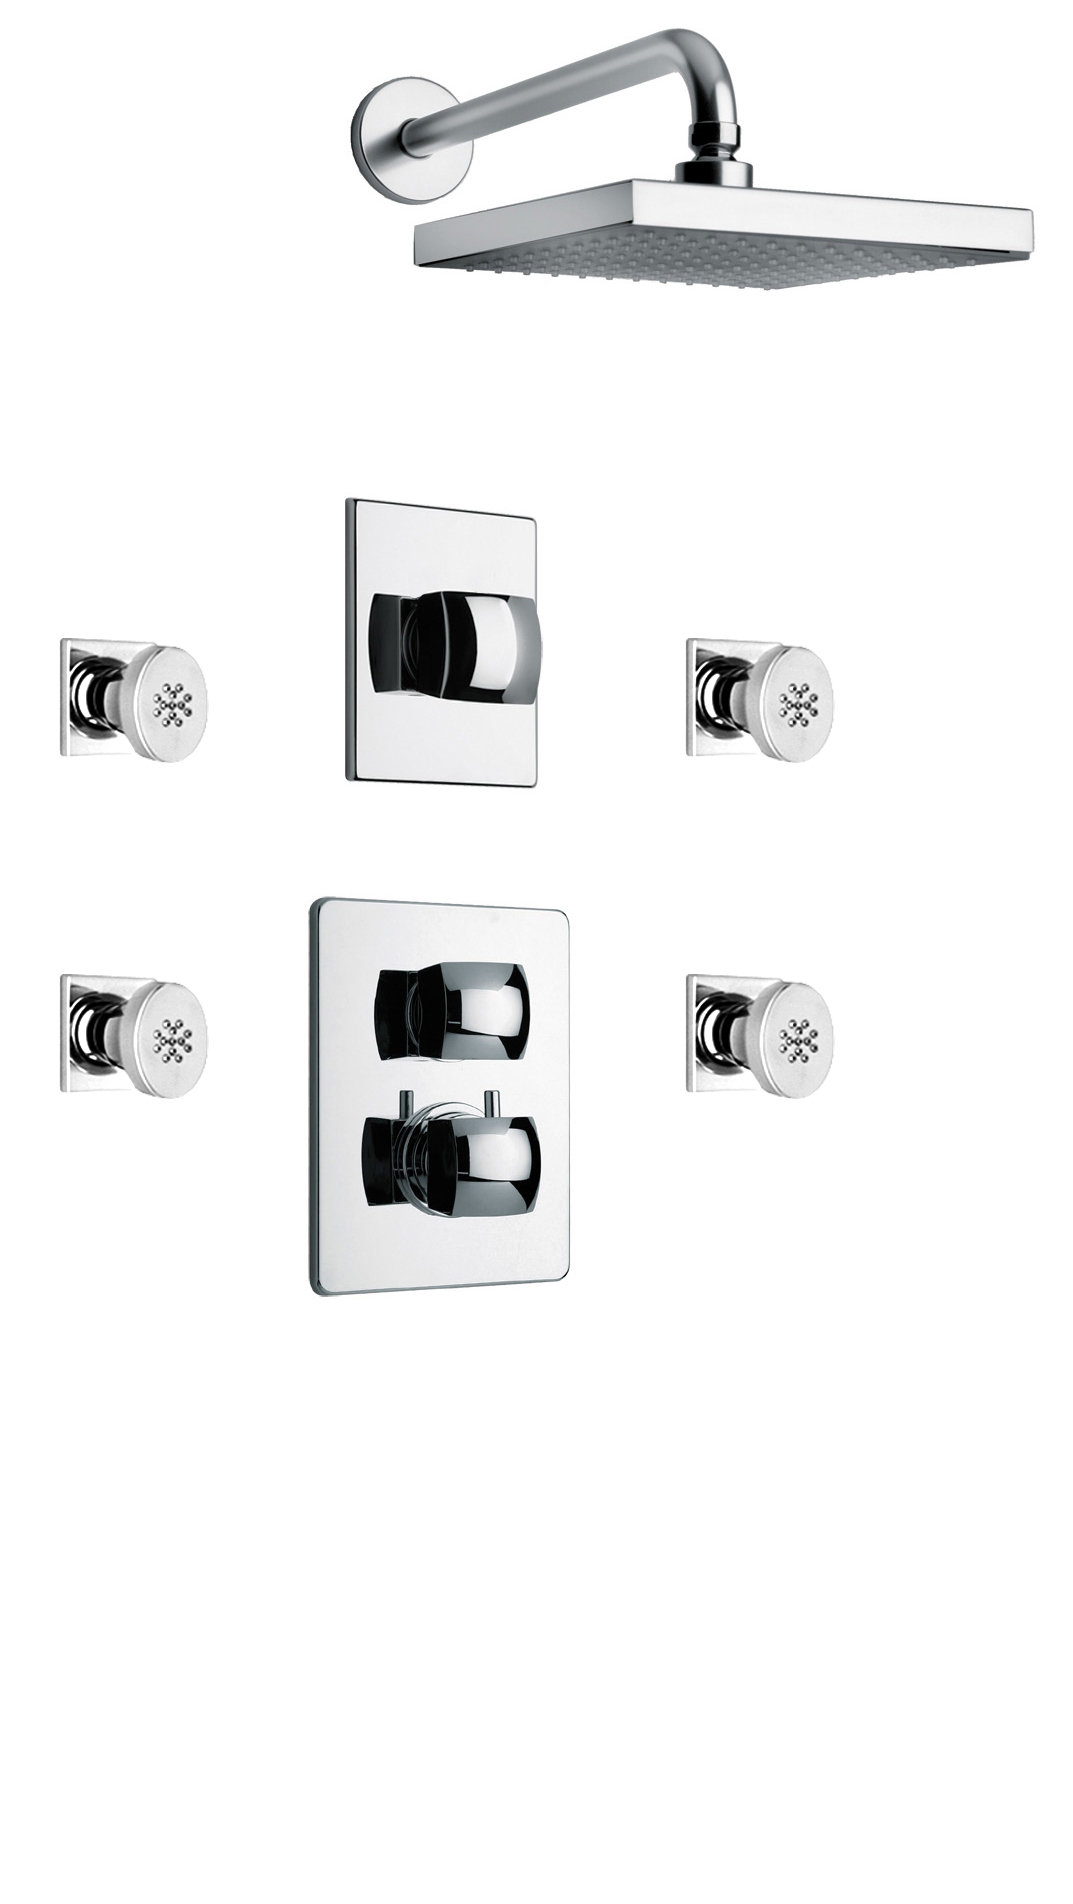 "Thermostatic Shower With 3/4"" Ceramic Disc Volume Control, 3-Way Diverter, 4 Body Jets in Chrome Finish"